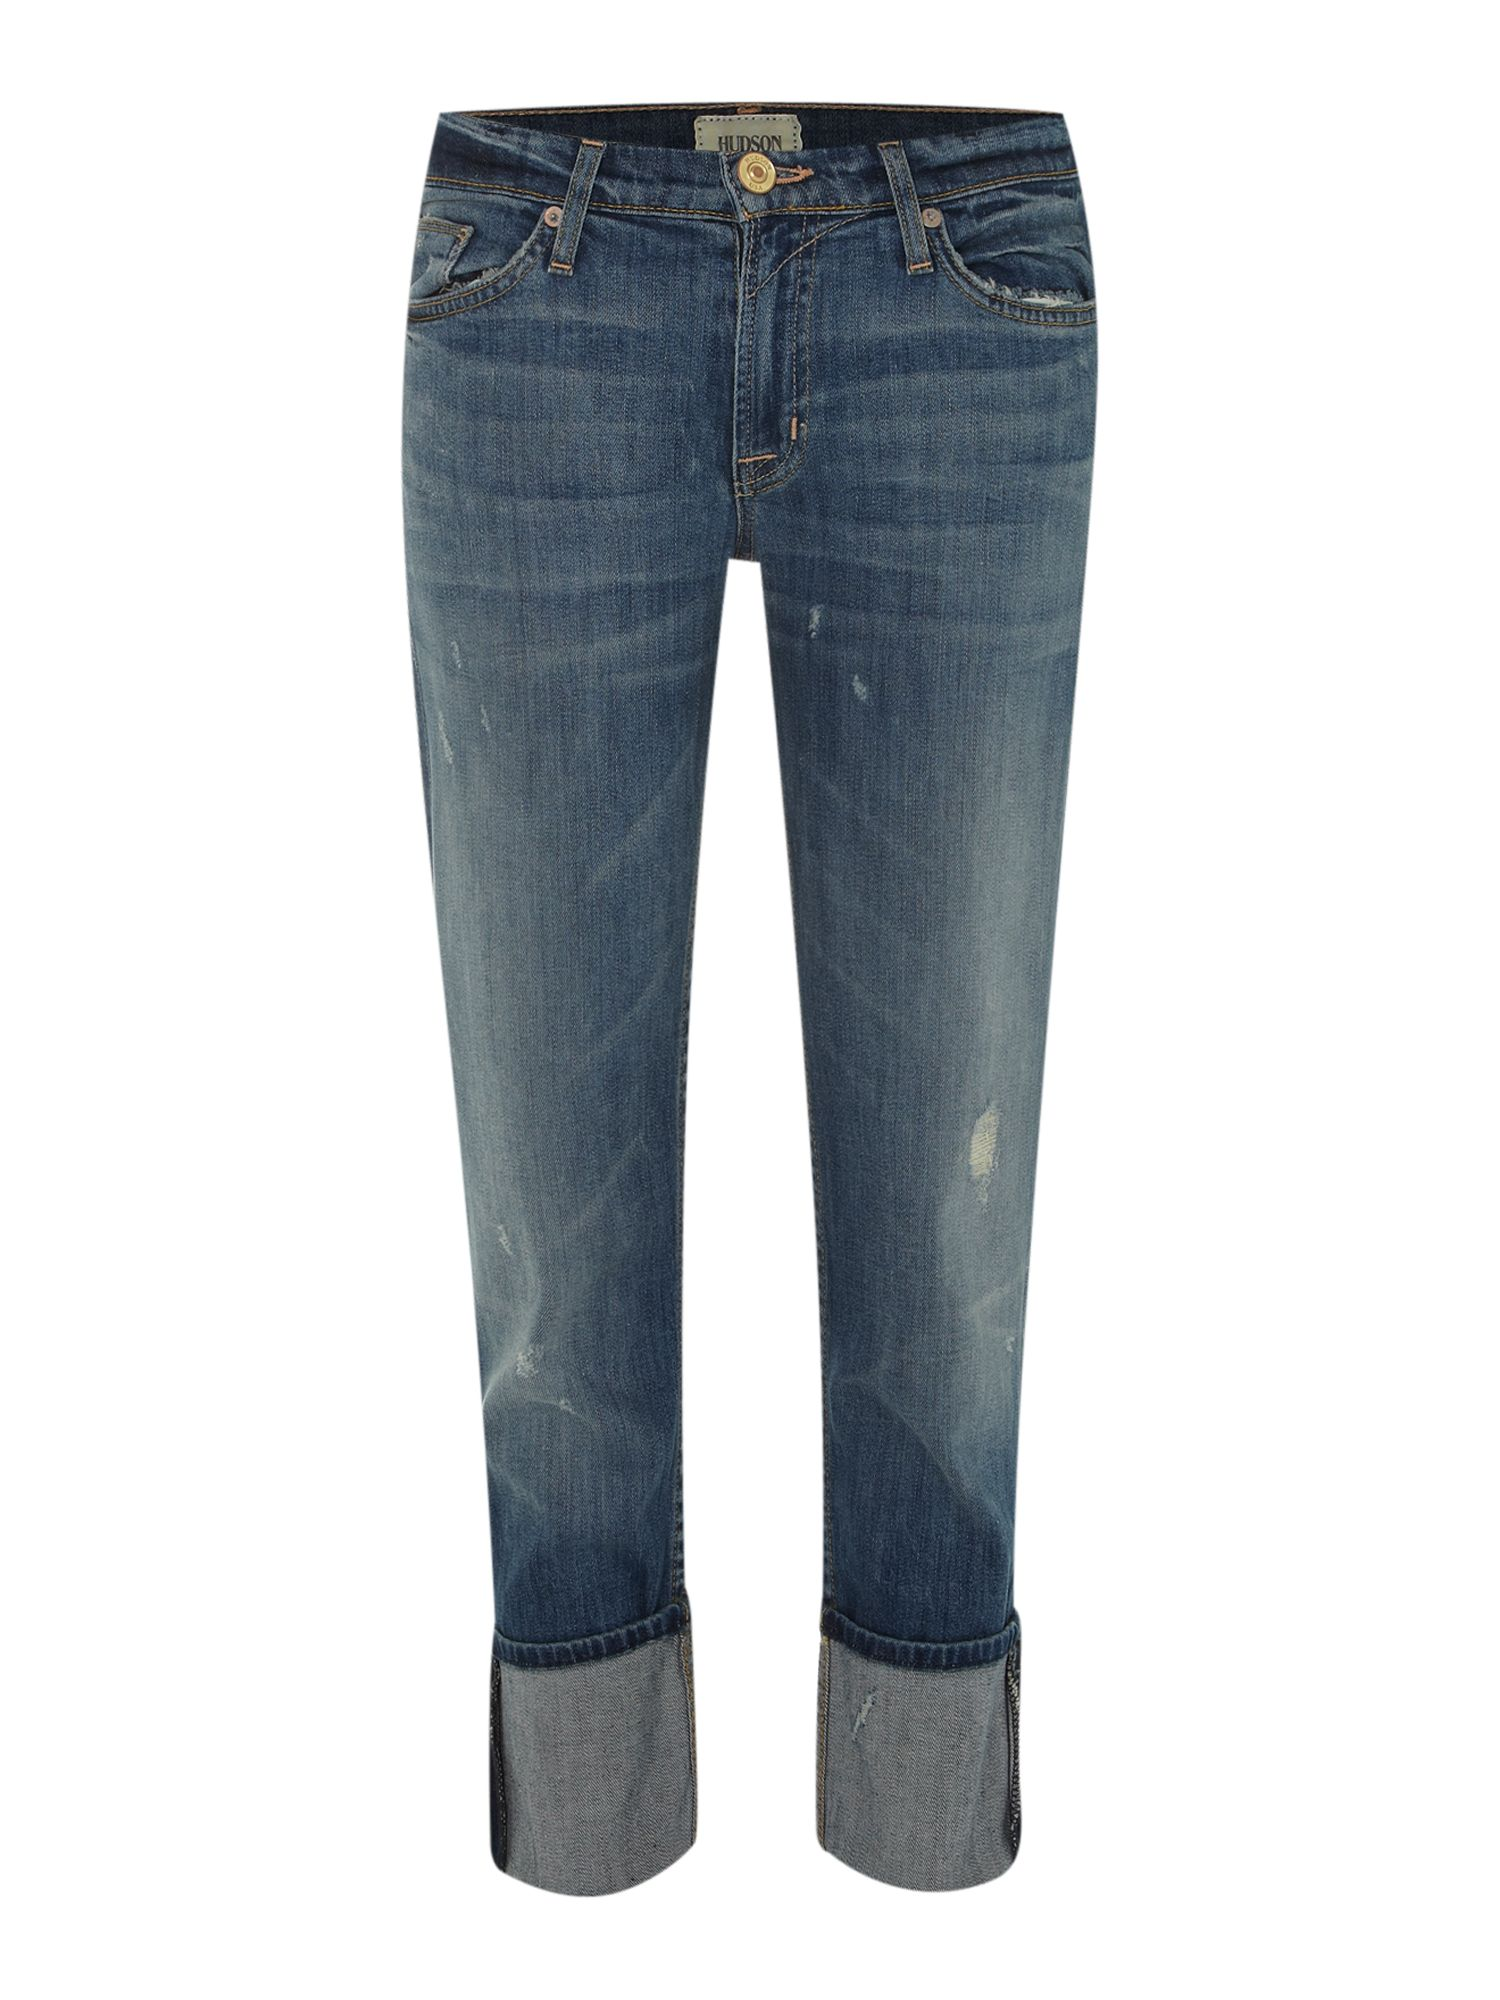 Muse cropped boyfriend jeans in Indie